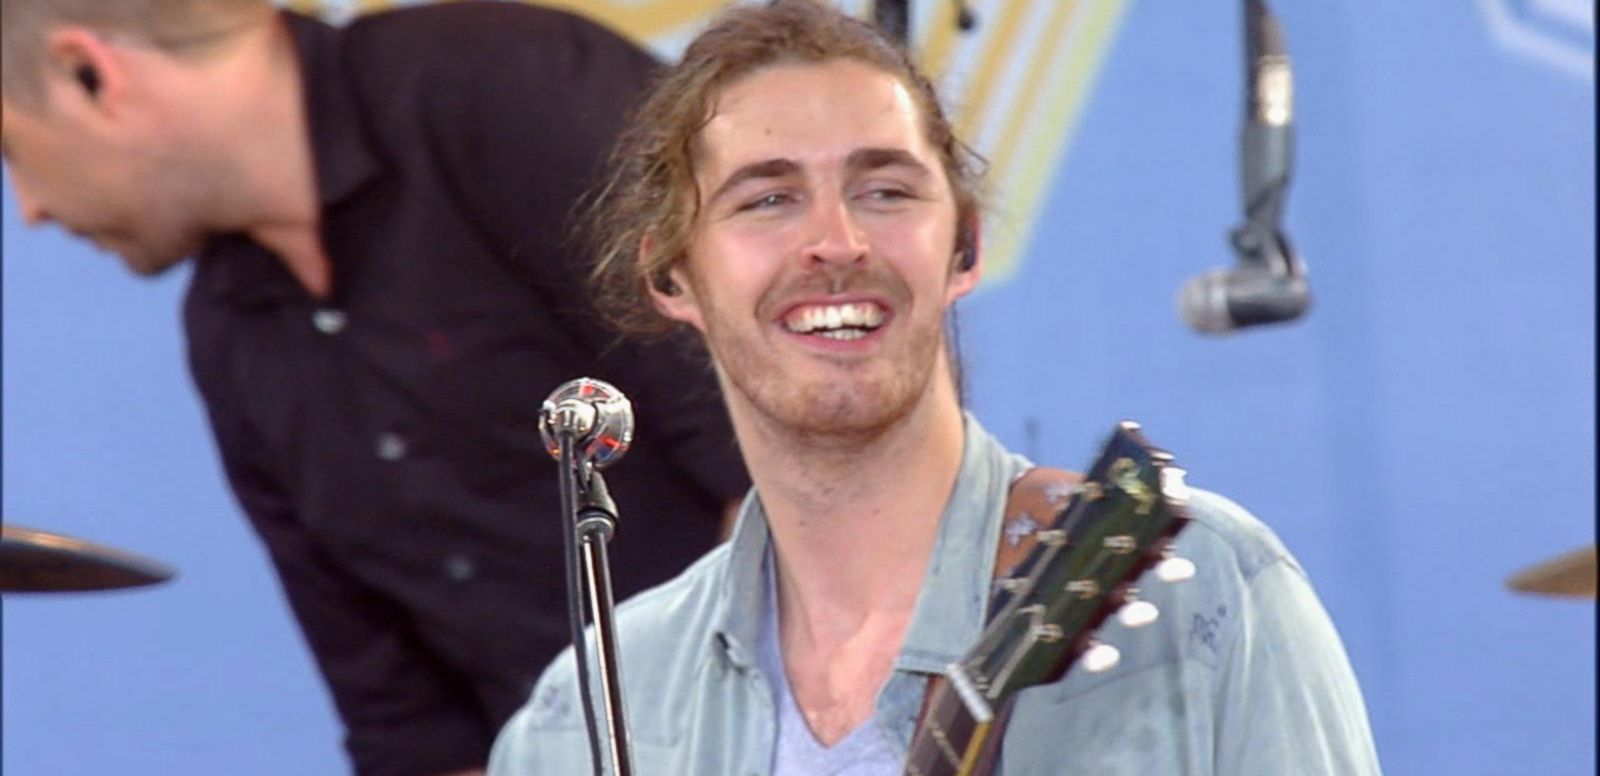 VIDEO: Hozier Performs 'Someone New' Live